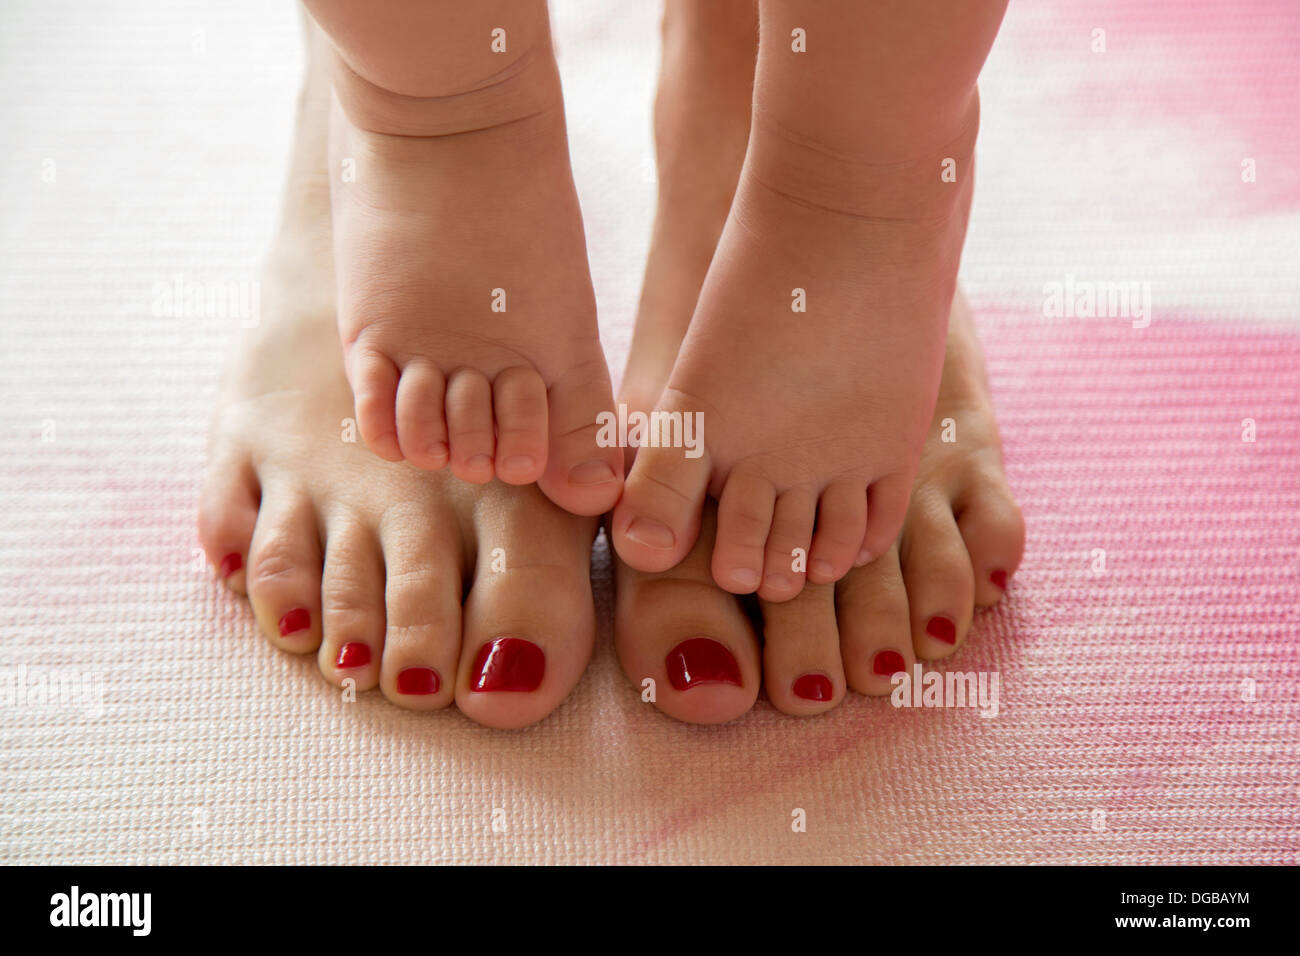 Baby toes on her mother's feet - Stock Image